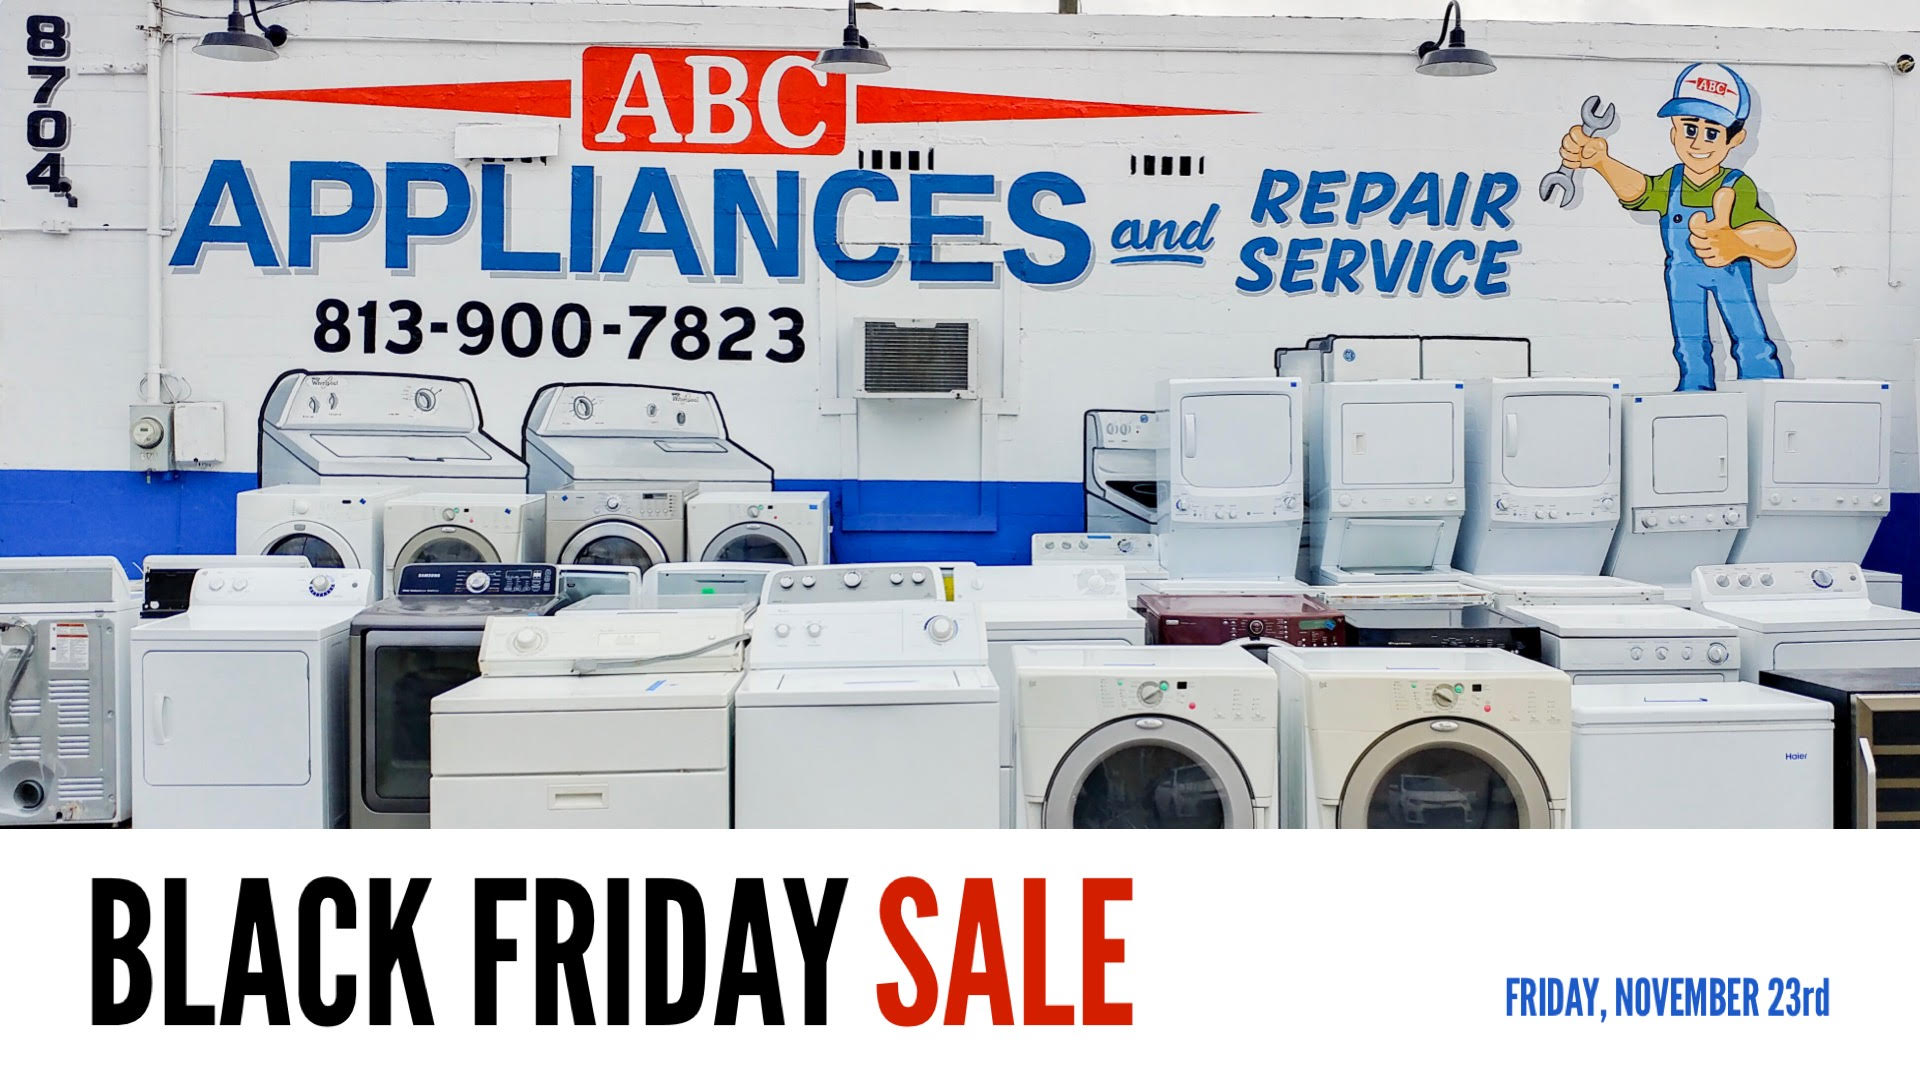 Black Friday Sales At Abc Used Appliances In Tampa Fl